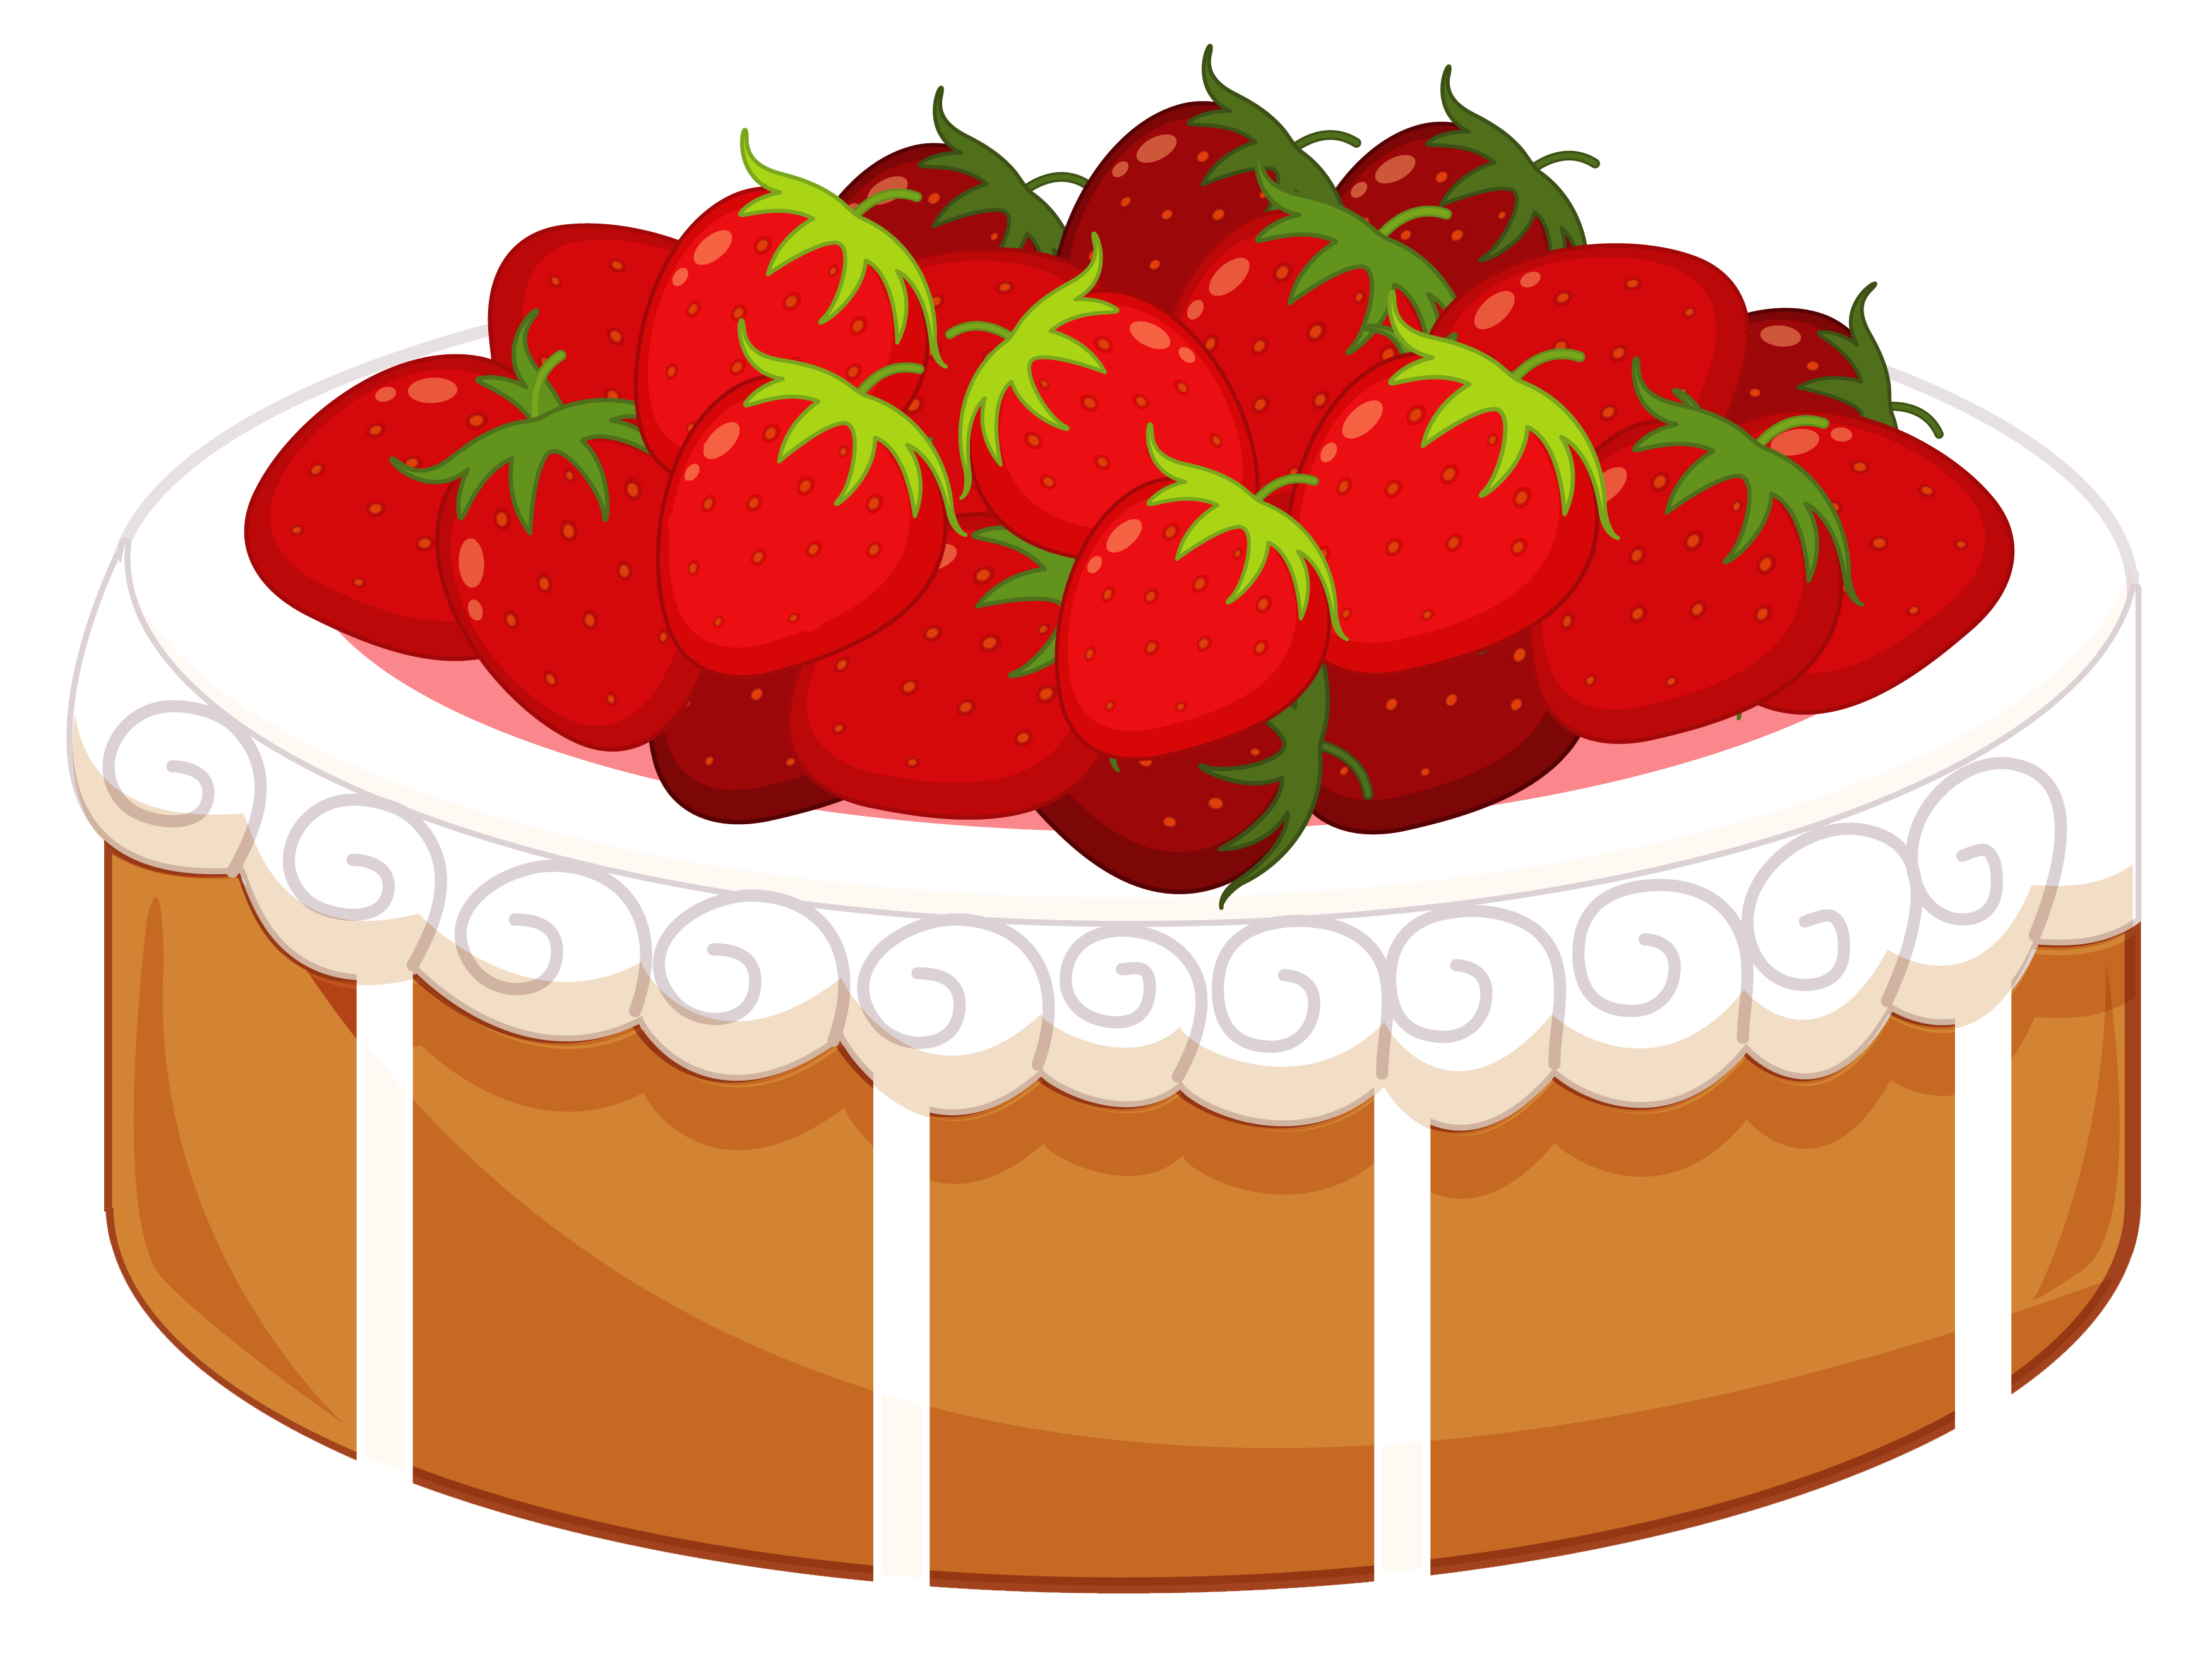 Pie clipart overhead. Strawberry cake